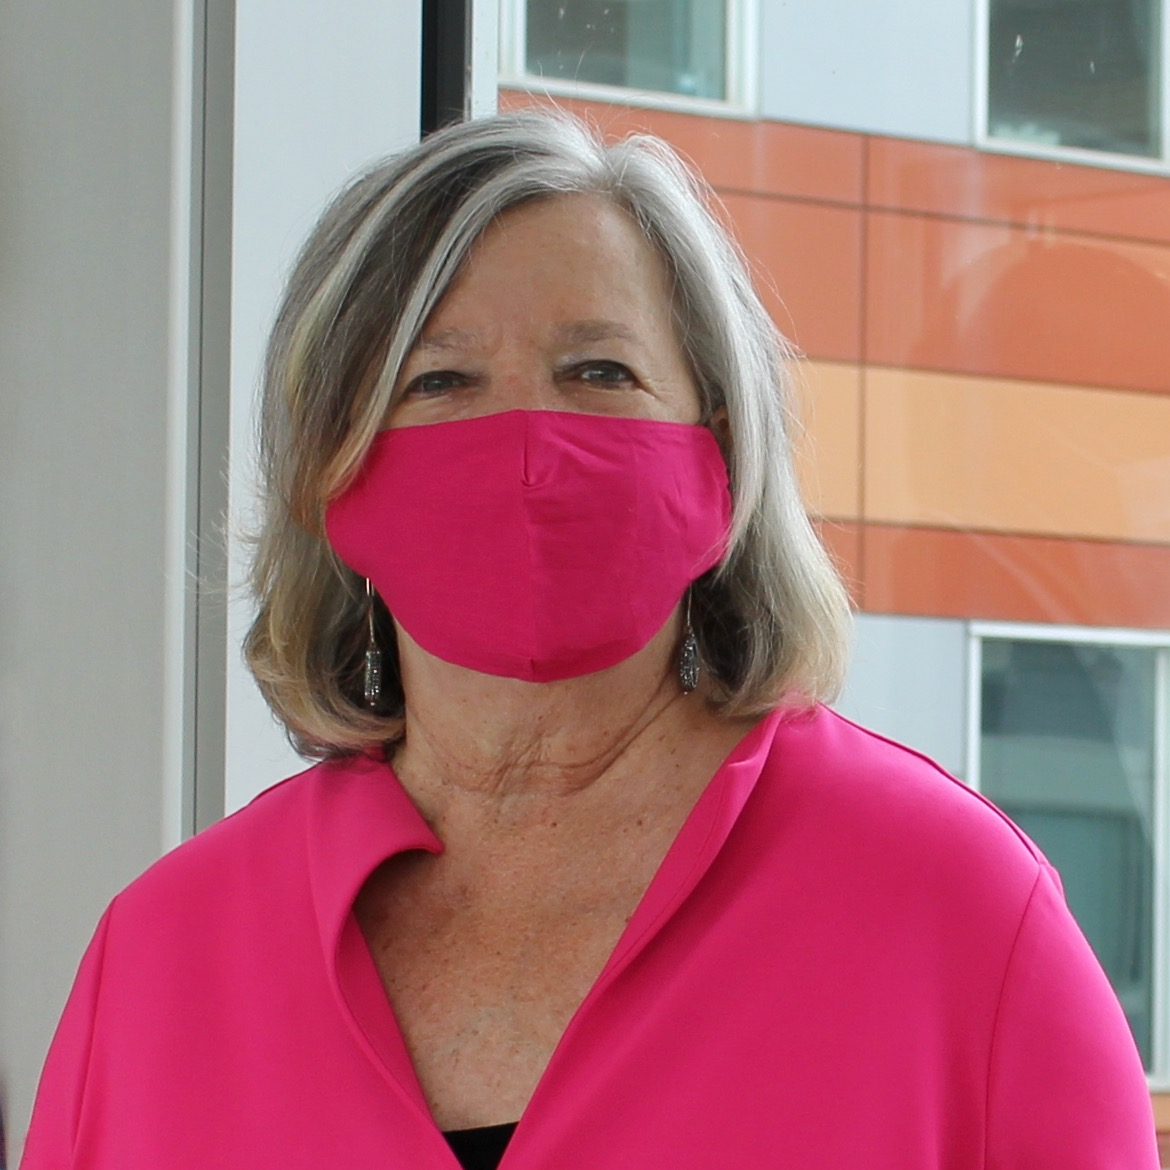 Image of woman wearing a bright pink mask posing for photo